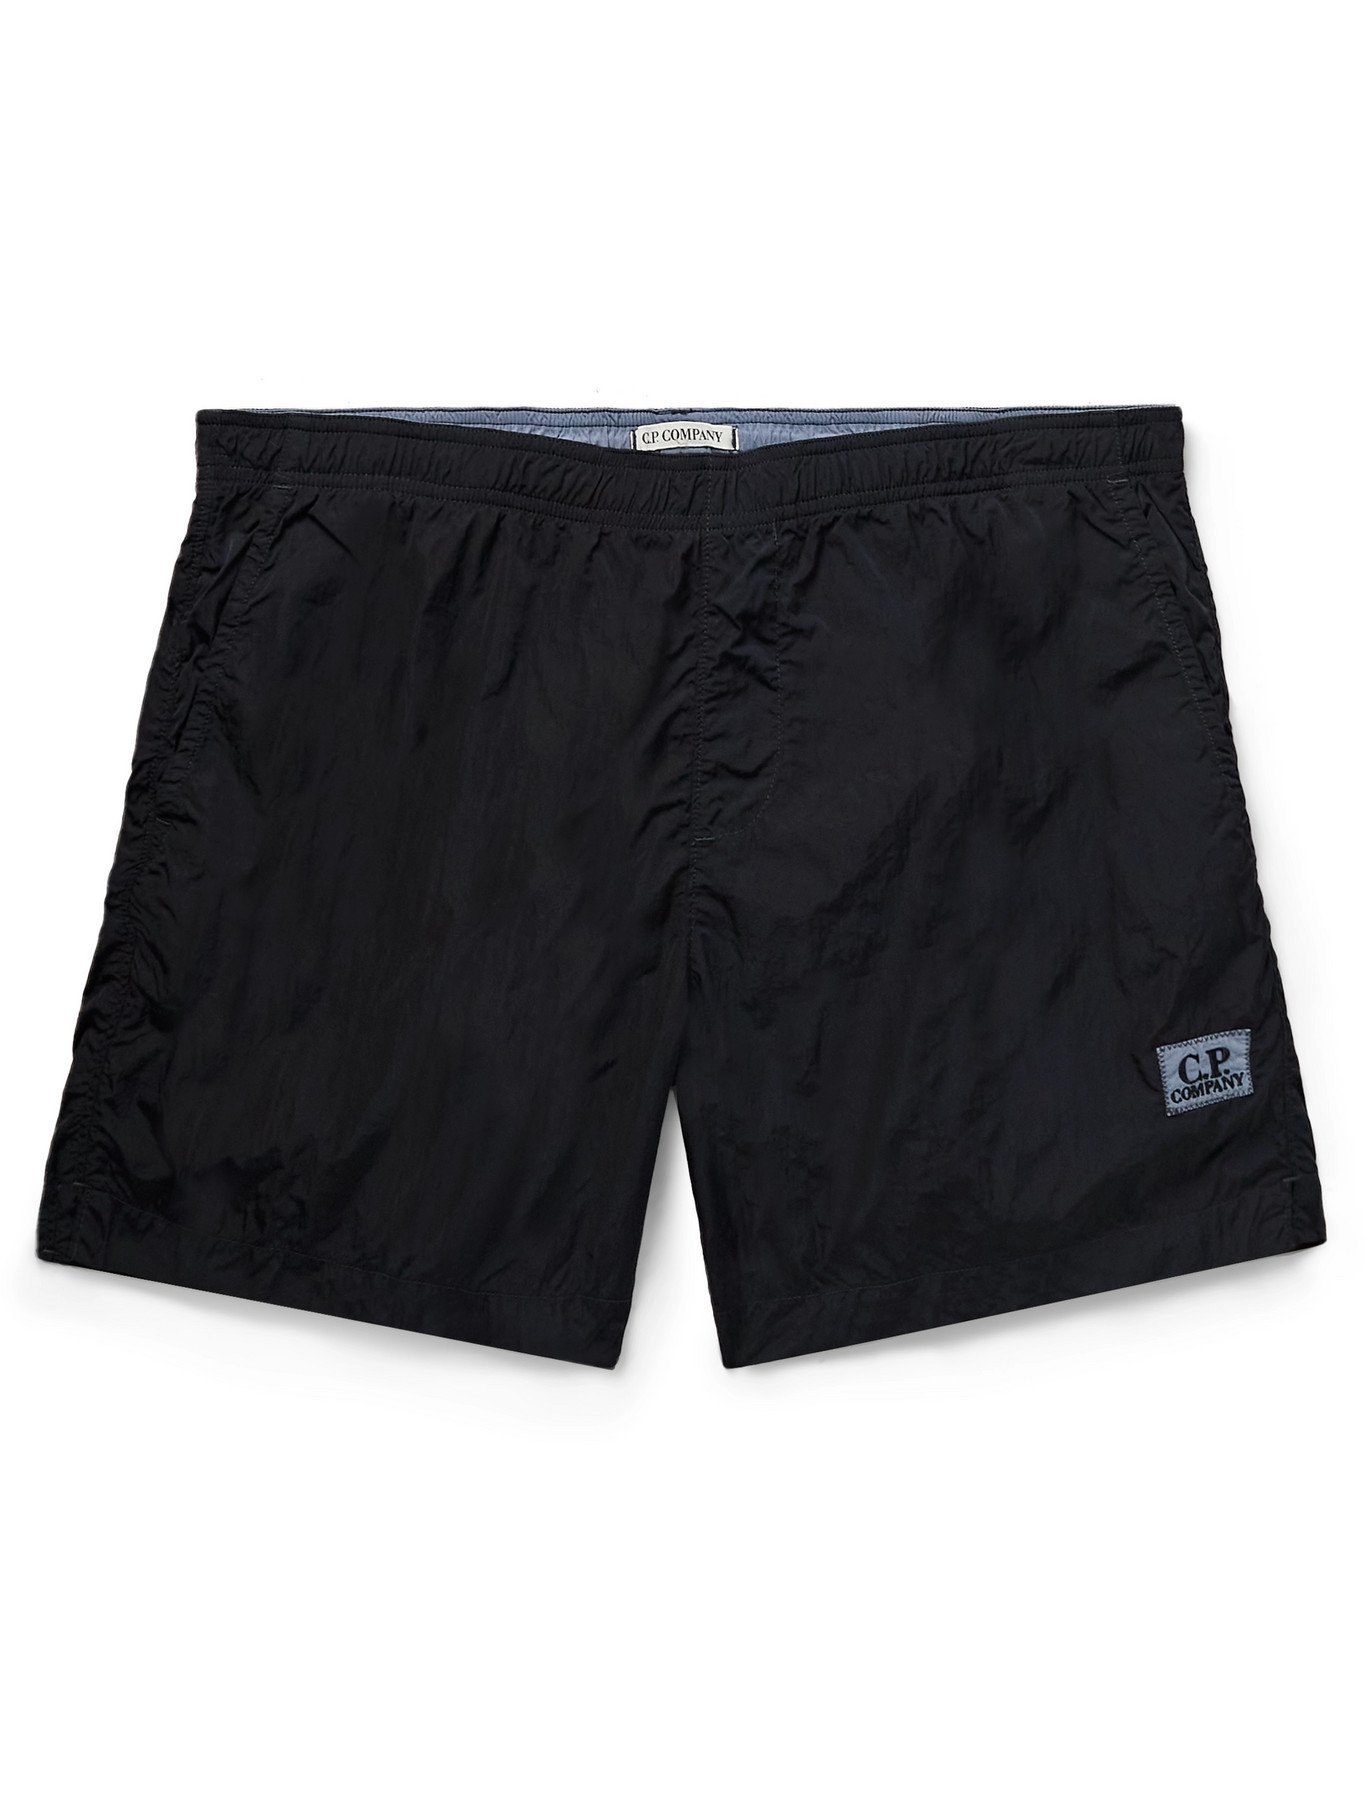 Photo: C.P. COMPANY - Mid-Length Logo-Appliquéd Garment-Dyed Swim Shorts - Black